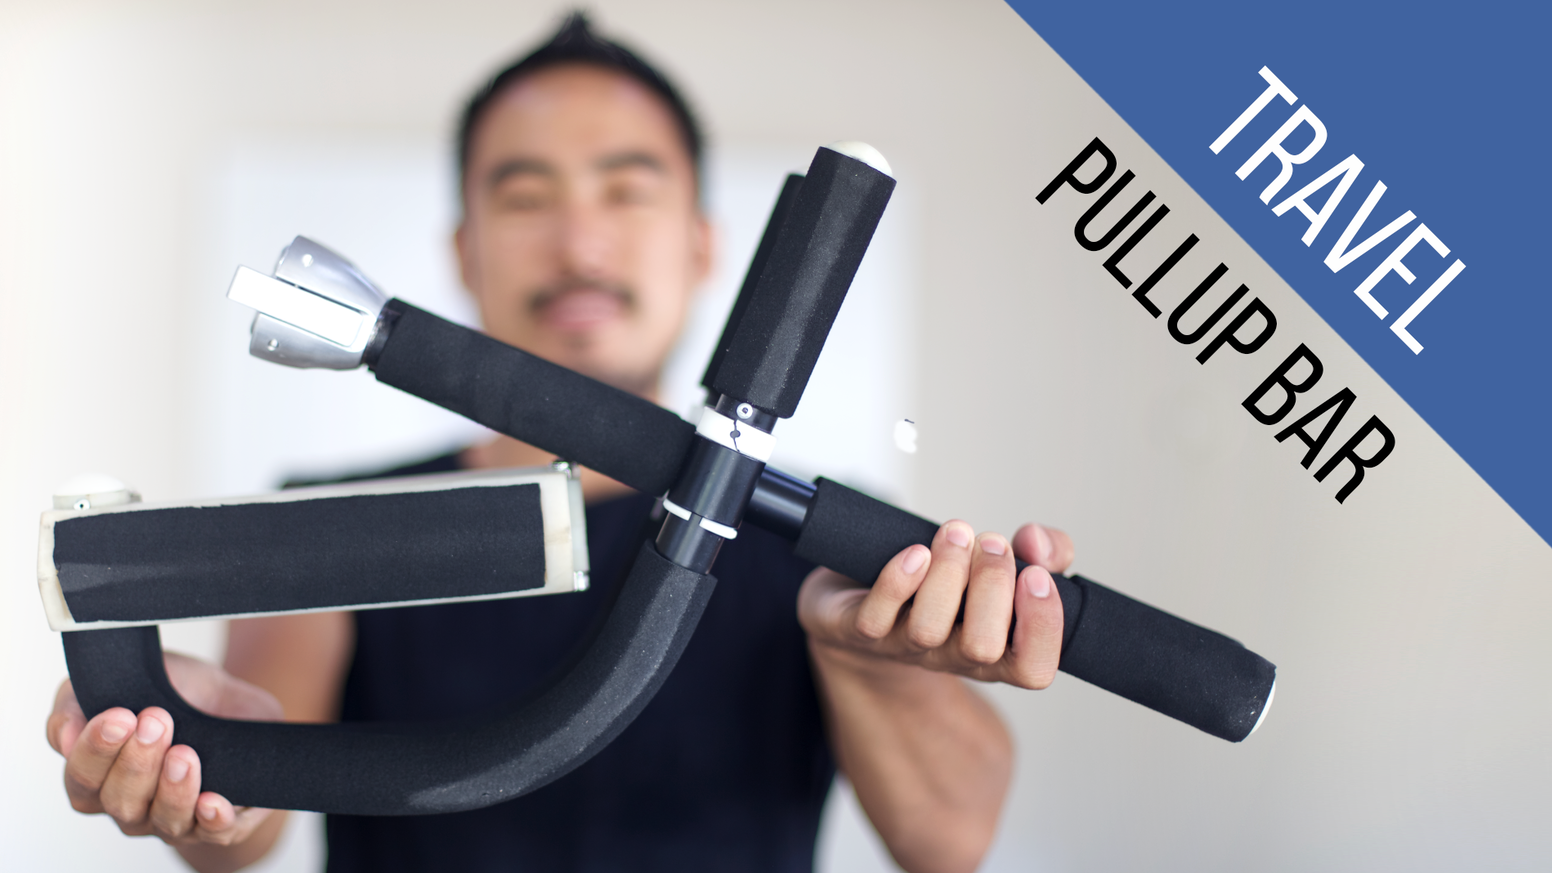 Toss out that bulky pullup bar! Introducing Flexr, a lightweight yet sturdy pullup bar that's easy to store and perfect for travelers.